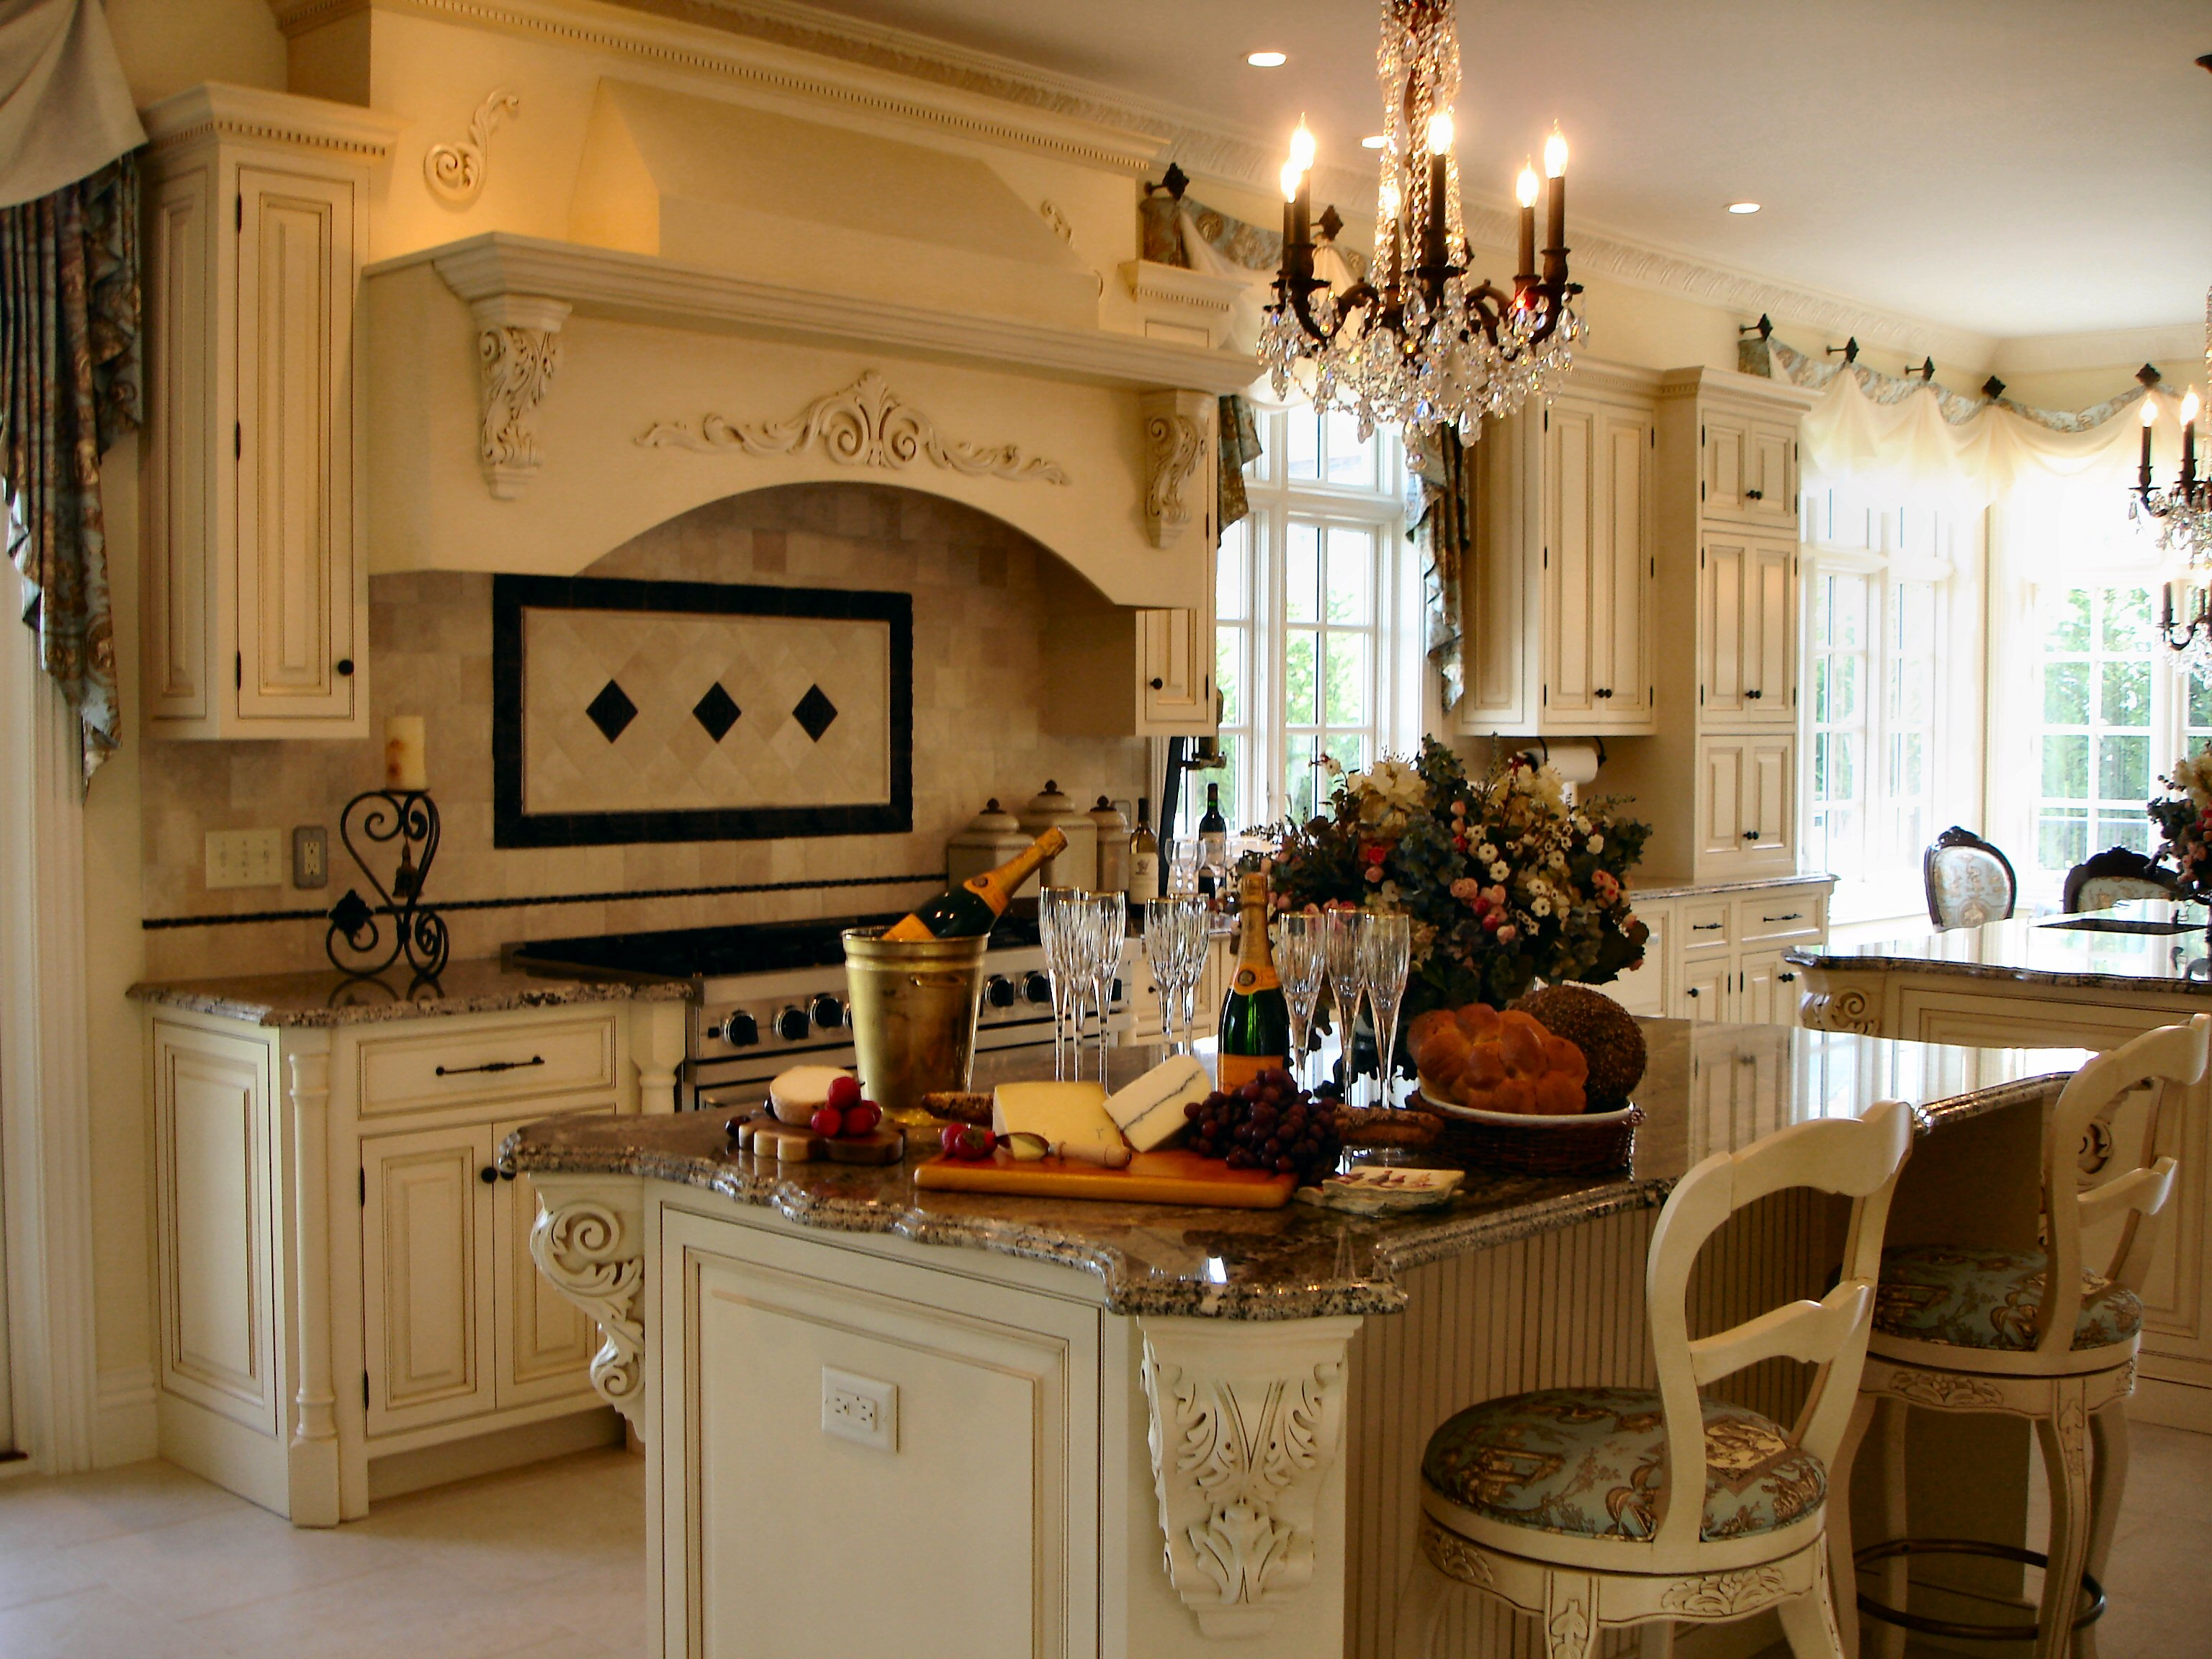 Kitchen Remodeling New Jersey Plans Inspiration Nj Kitchen Design & Remodeling  Design Build Pros Review